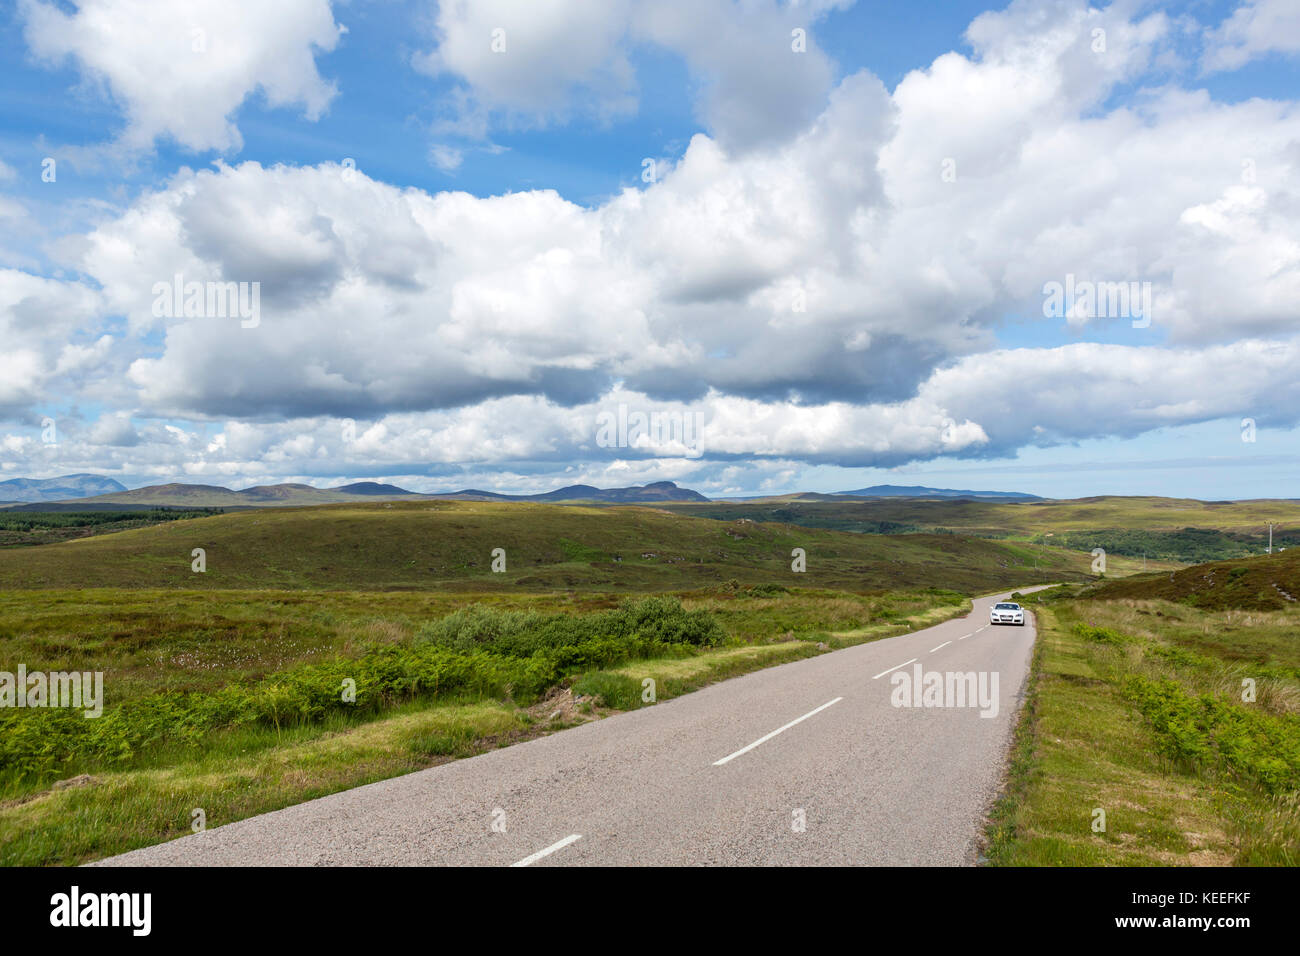 Car on the A836 near Invernaver, part of the North Coast 500 scenic route, Sutherland, Scottish Highlands, Scotland, - Stock Image